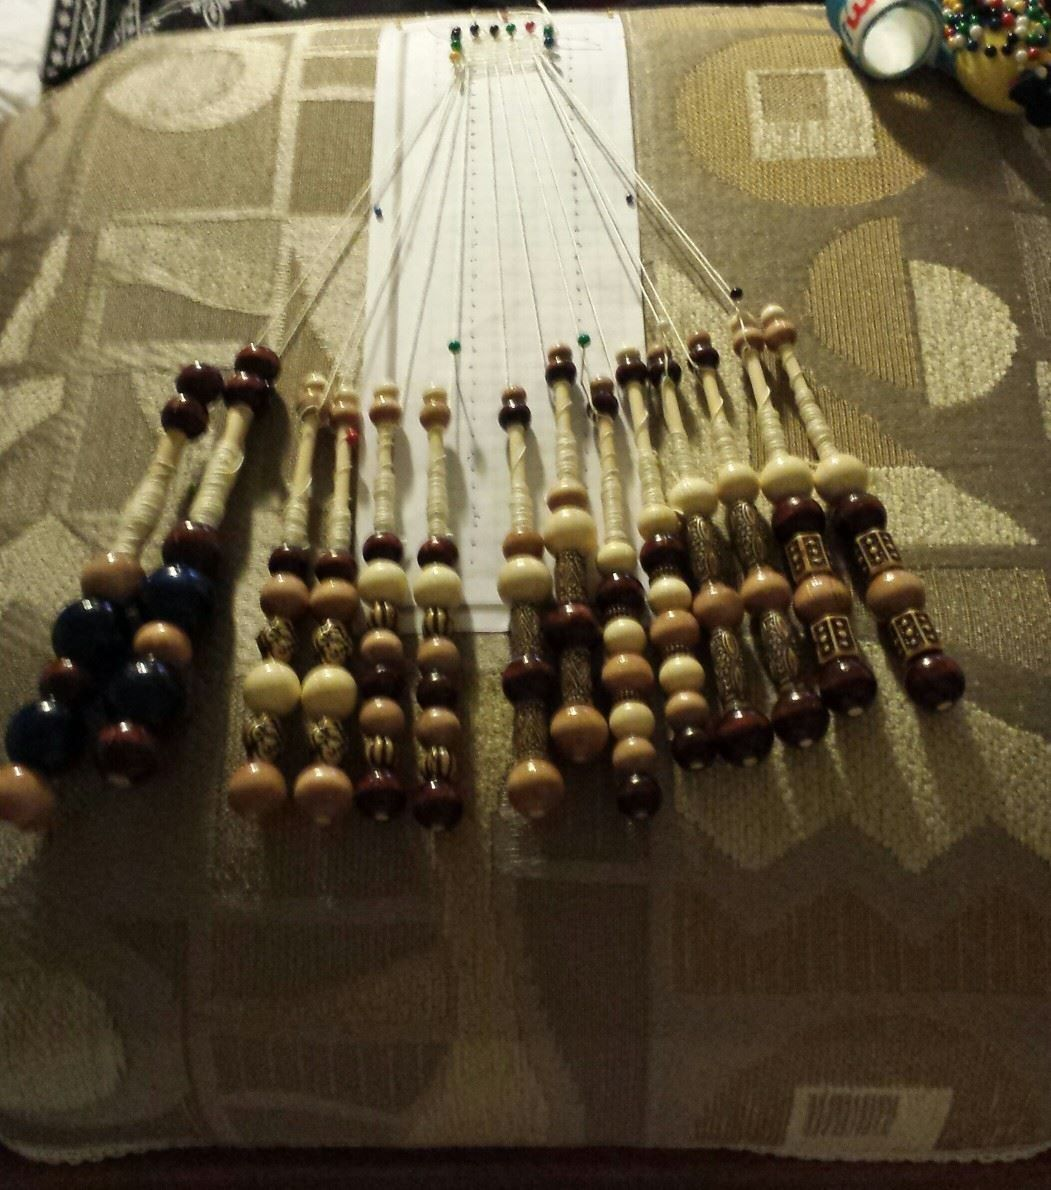 bobbins made by pinner, bobbin lace pillow by her mother in law